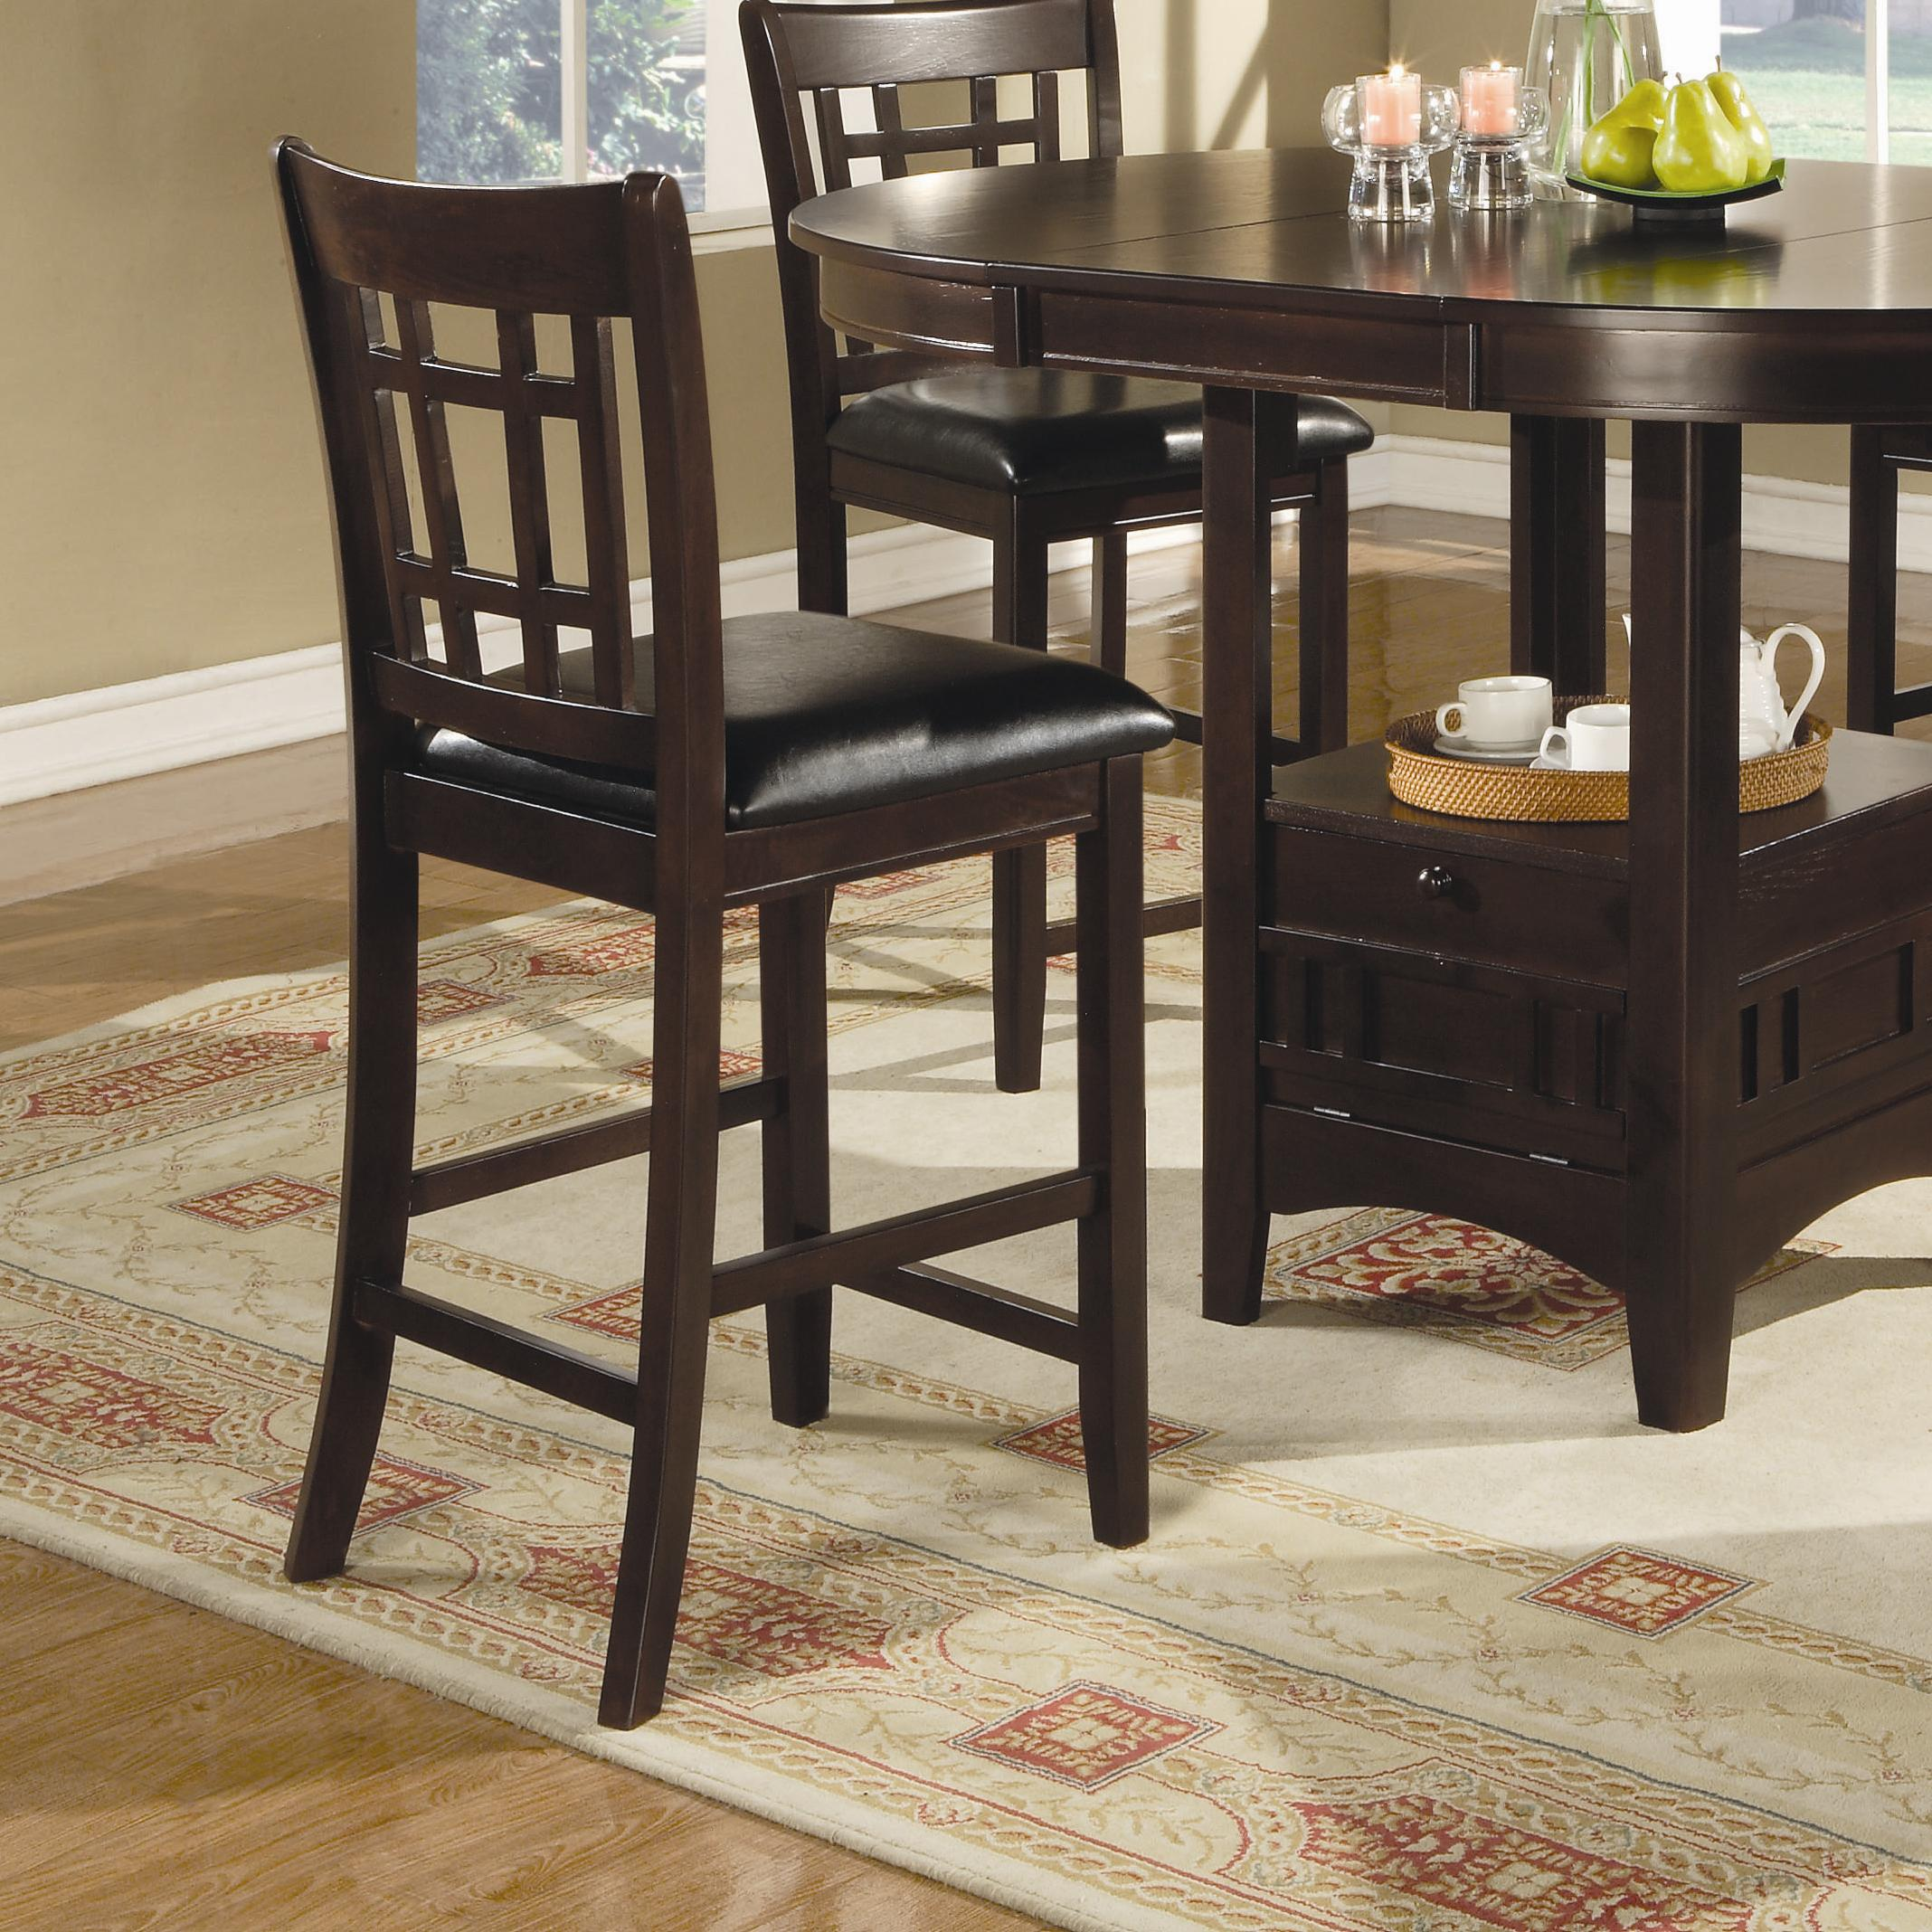 Lavon 24 Inch Bar Stool by Coaster at Rife's Home Furniture